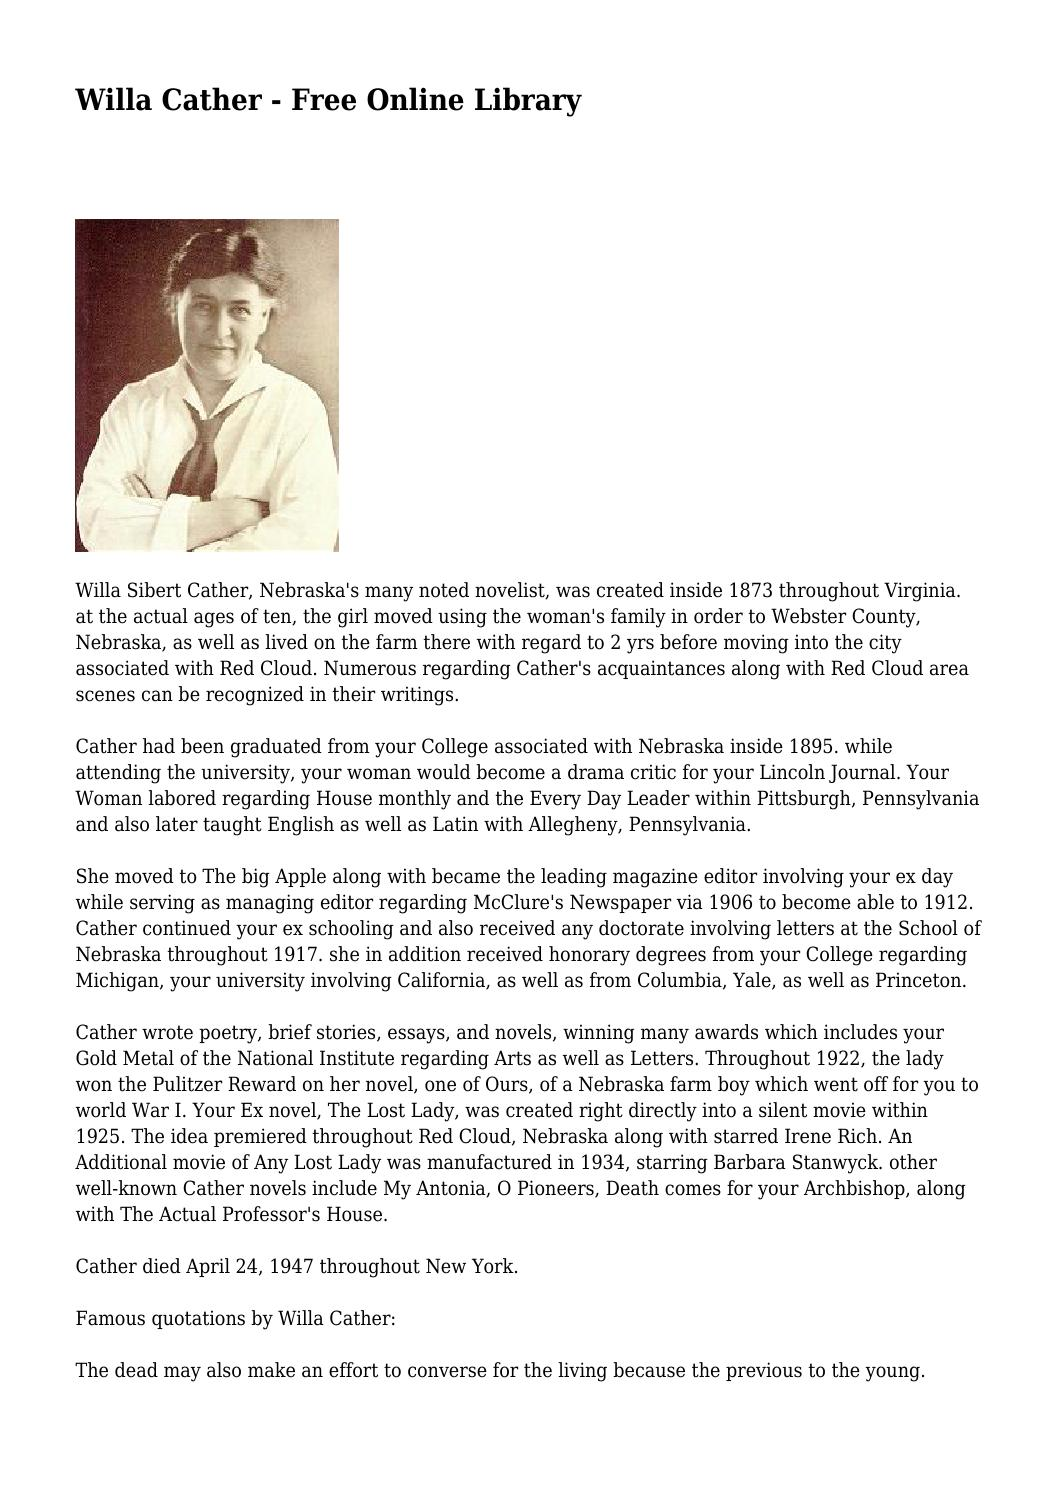 Willa Cather - Free Online Library by redundantnymph655 - issuu